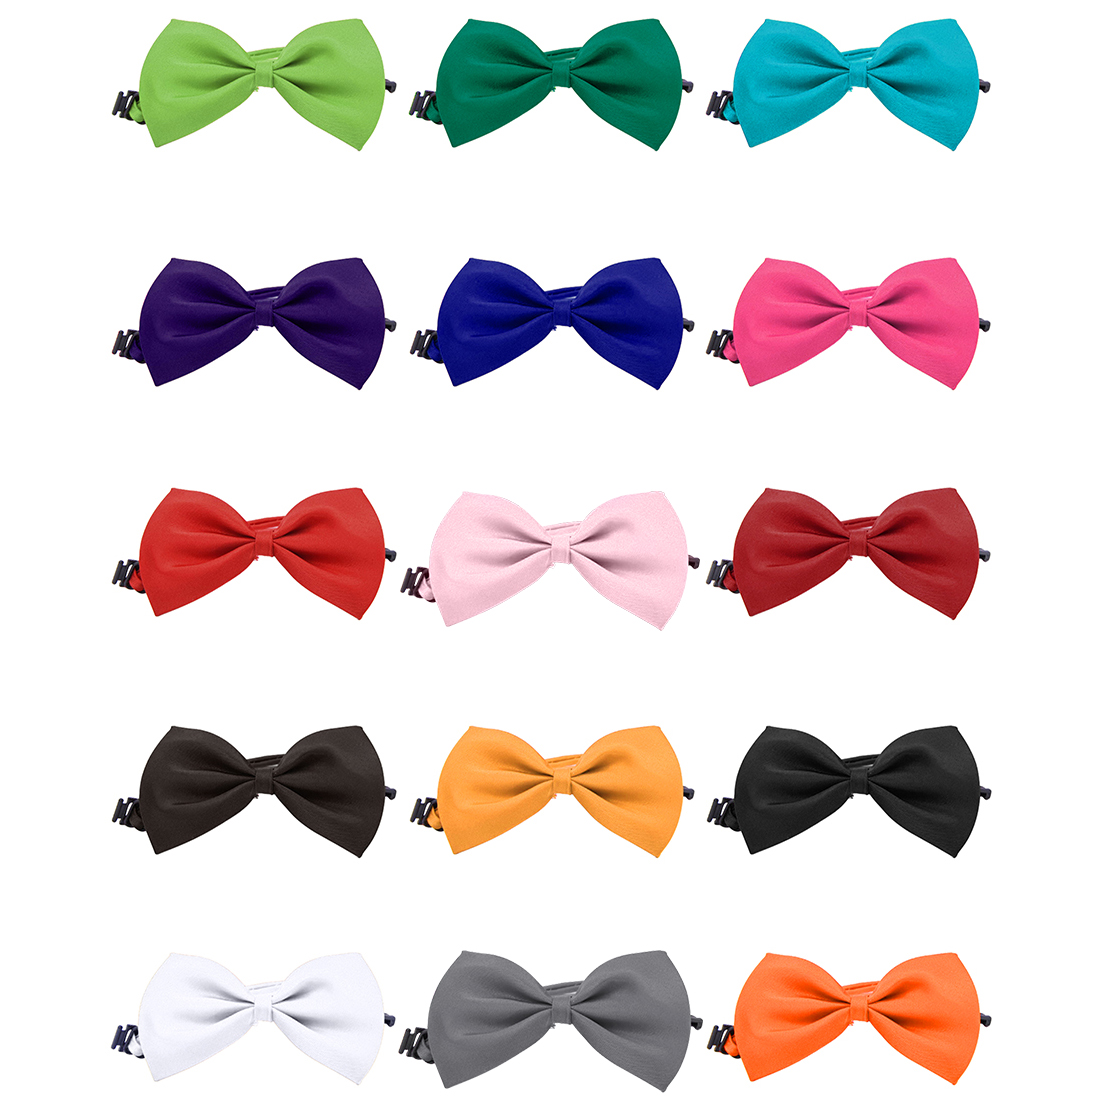 Lovely Pets Grooming Accessories Cute Dog Puppy Cat Kitten Pet Toy Kid Solid Bow Tie Necktie Clothes Cat Dog Necktie